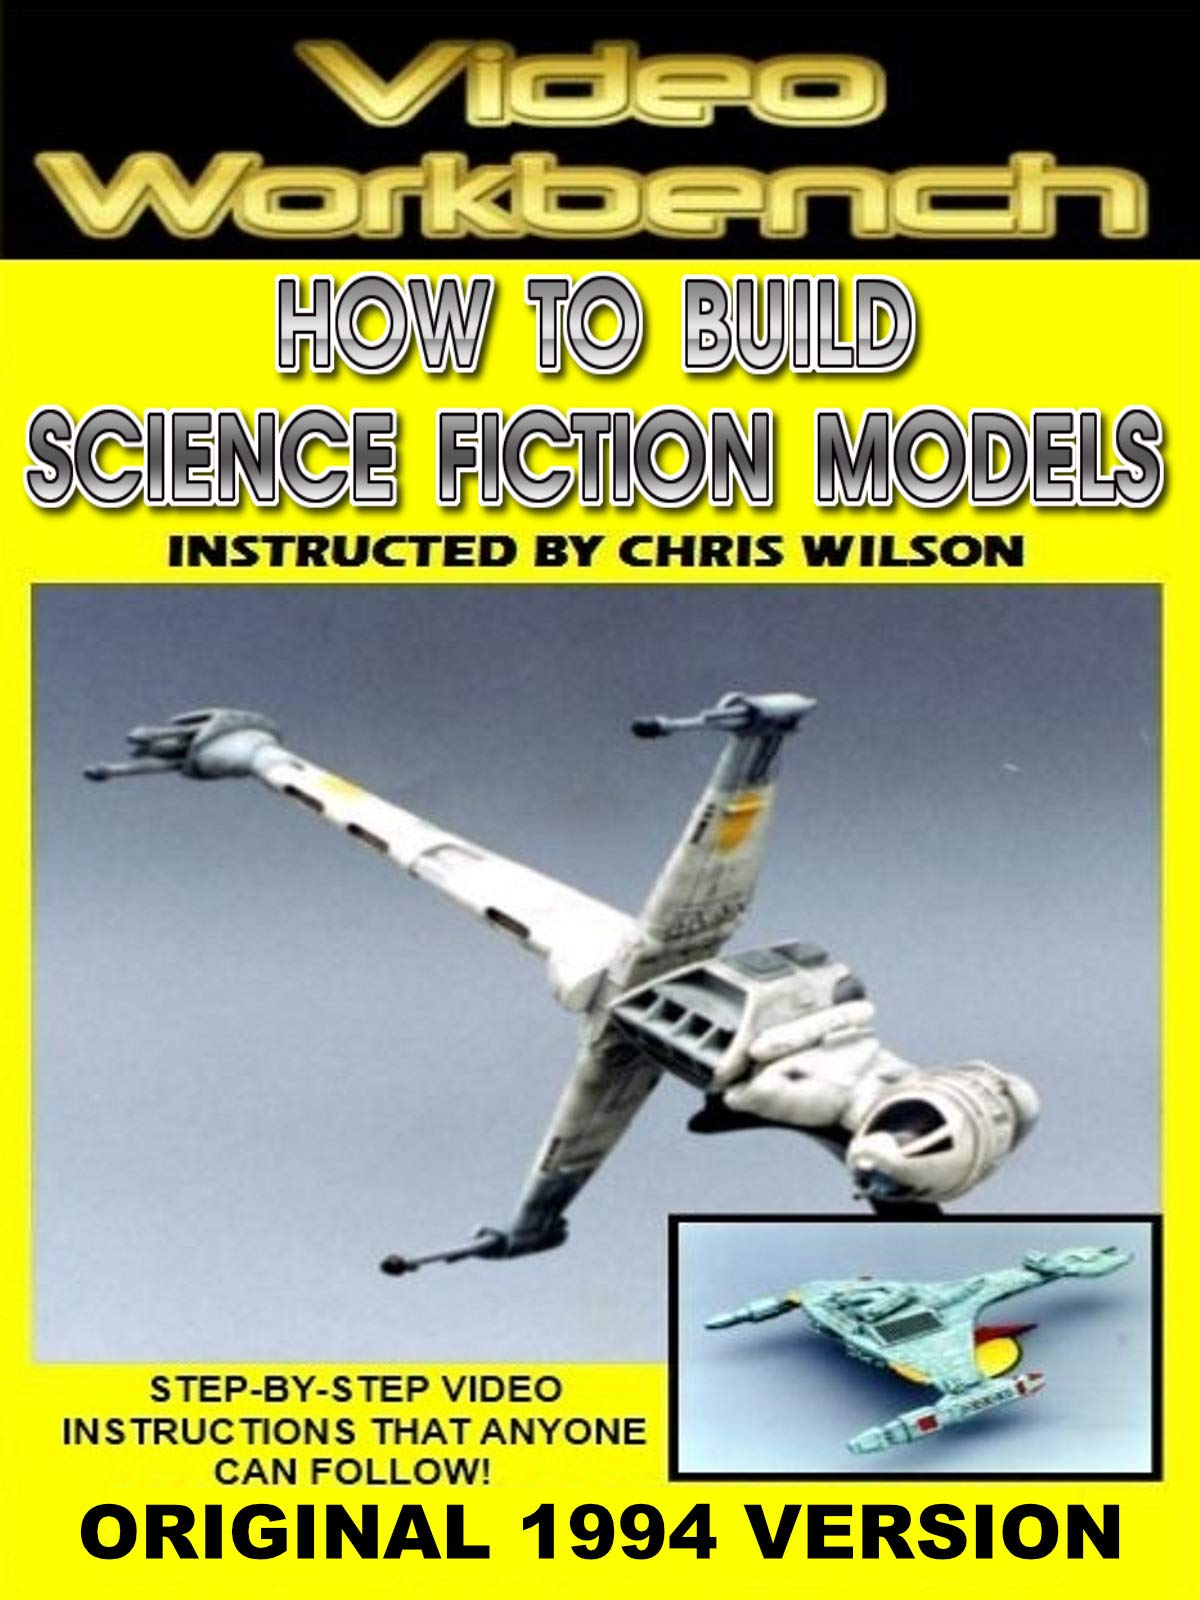 Video Workbench: How to Build Science Fiction Models (1994 Original)